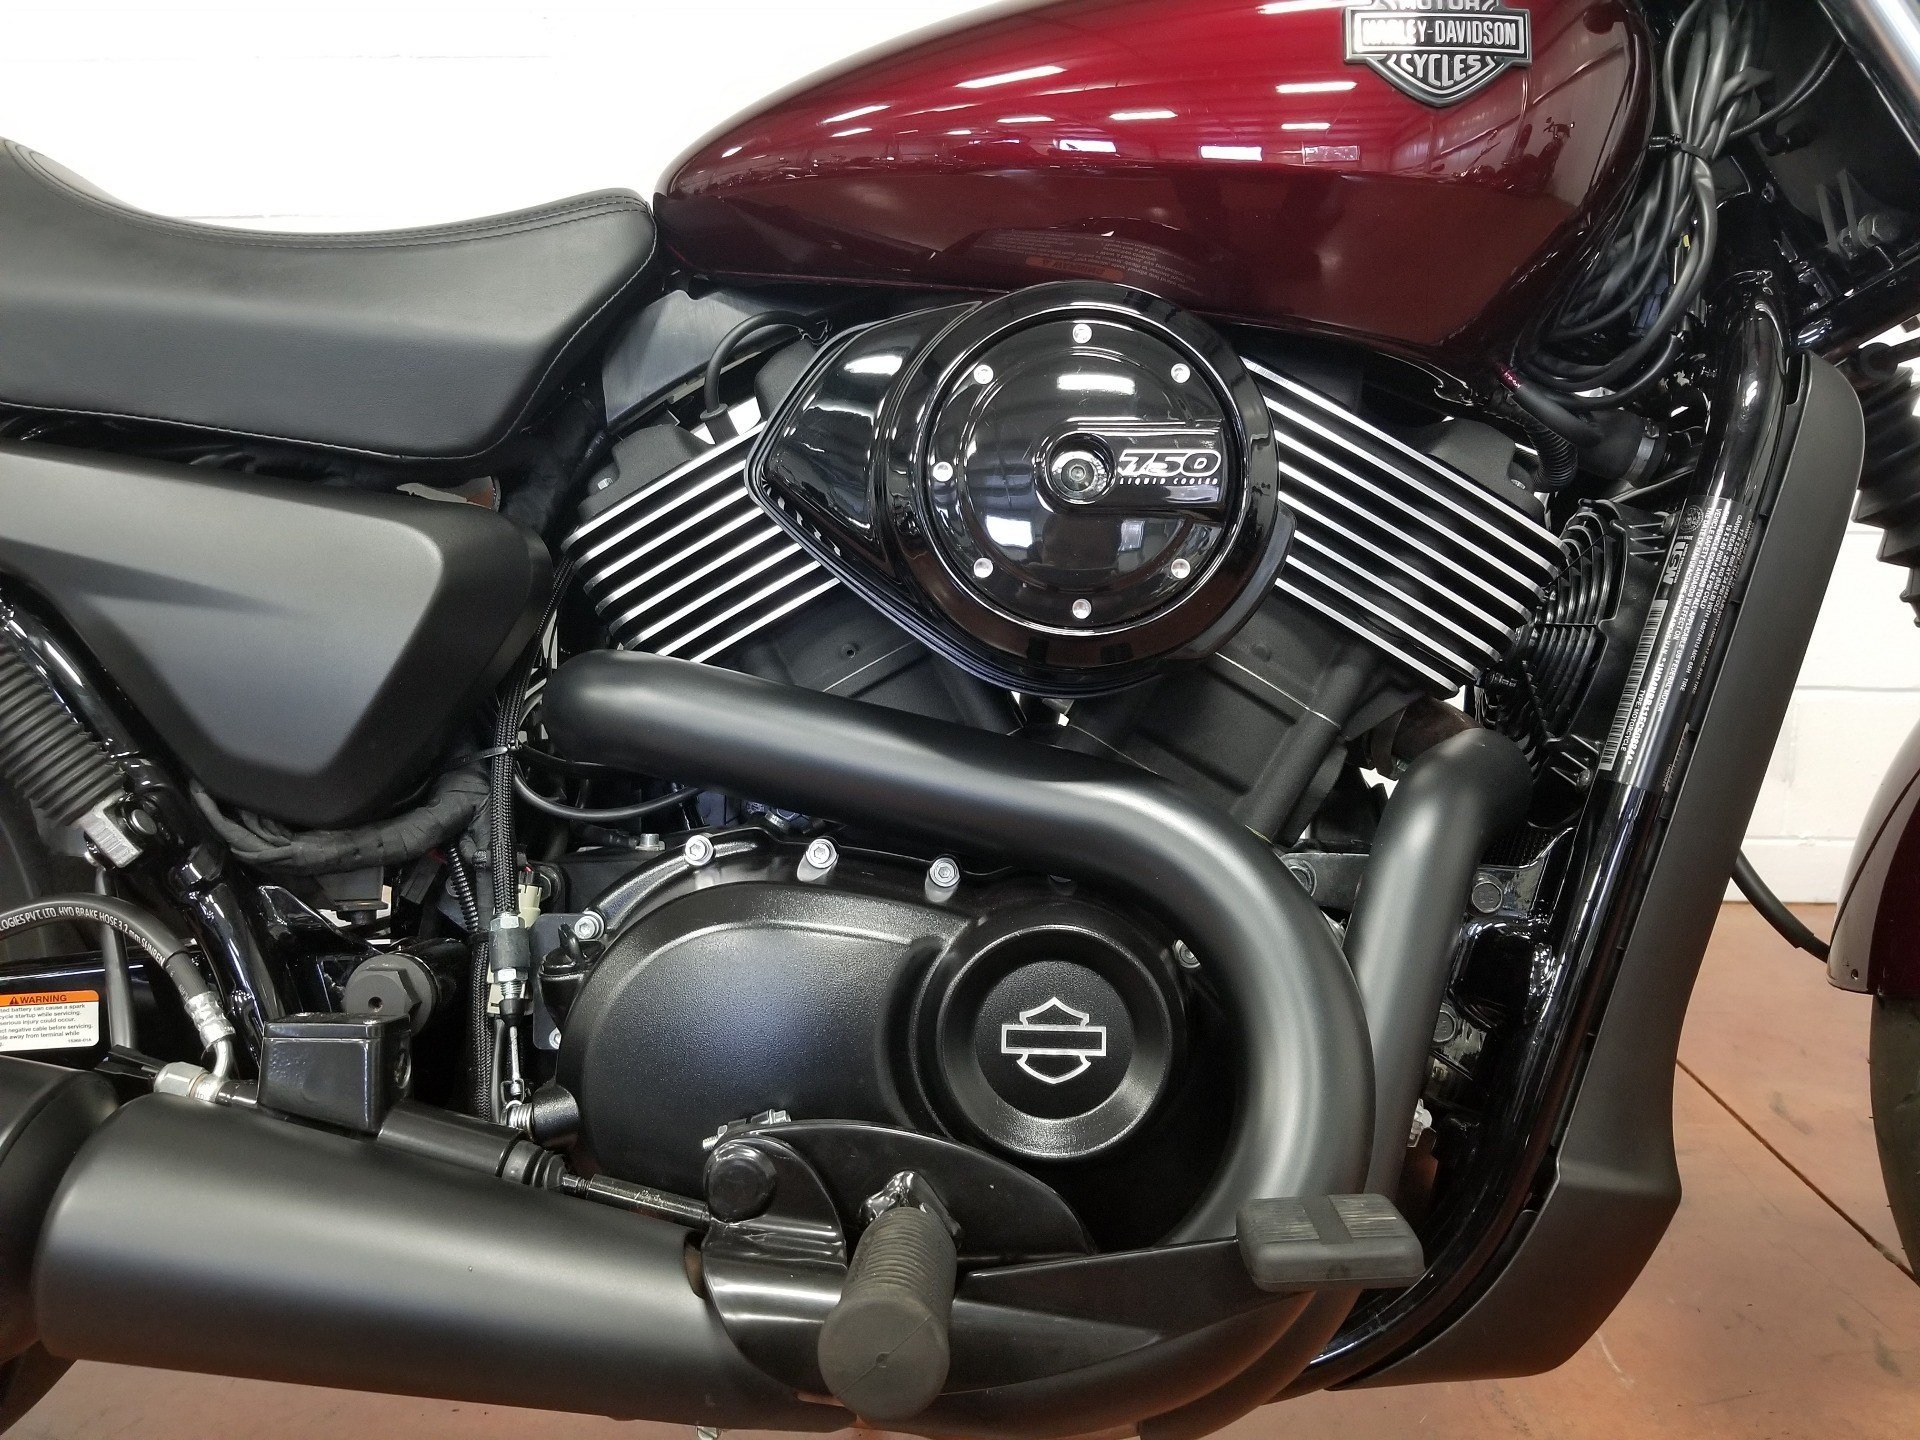 2015 Harley-Davidson Street™ 750 in Sunbury, Ohio - Photo 3